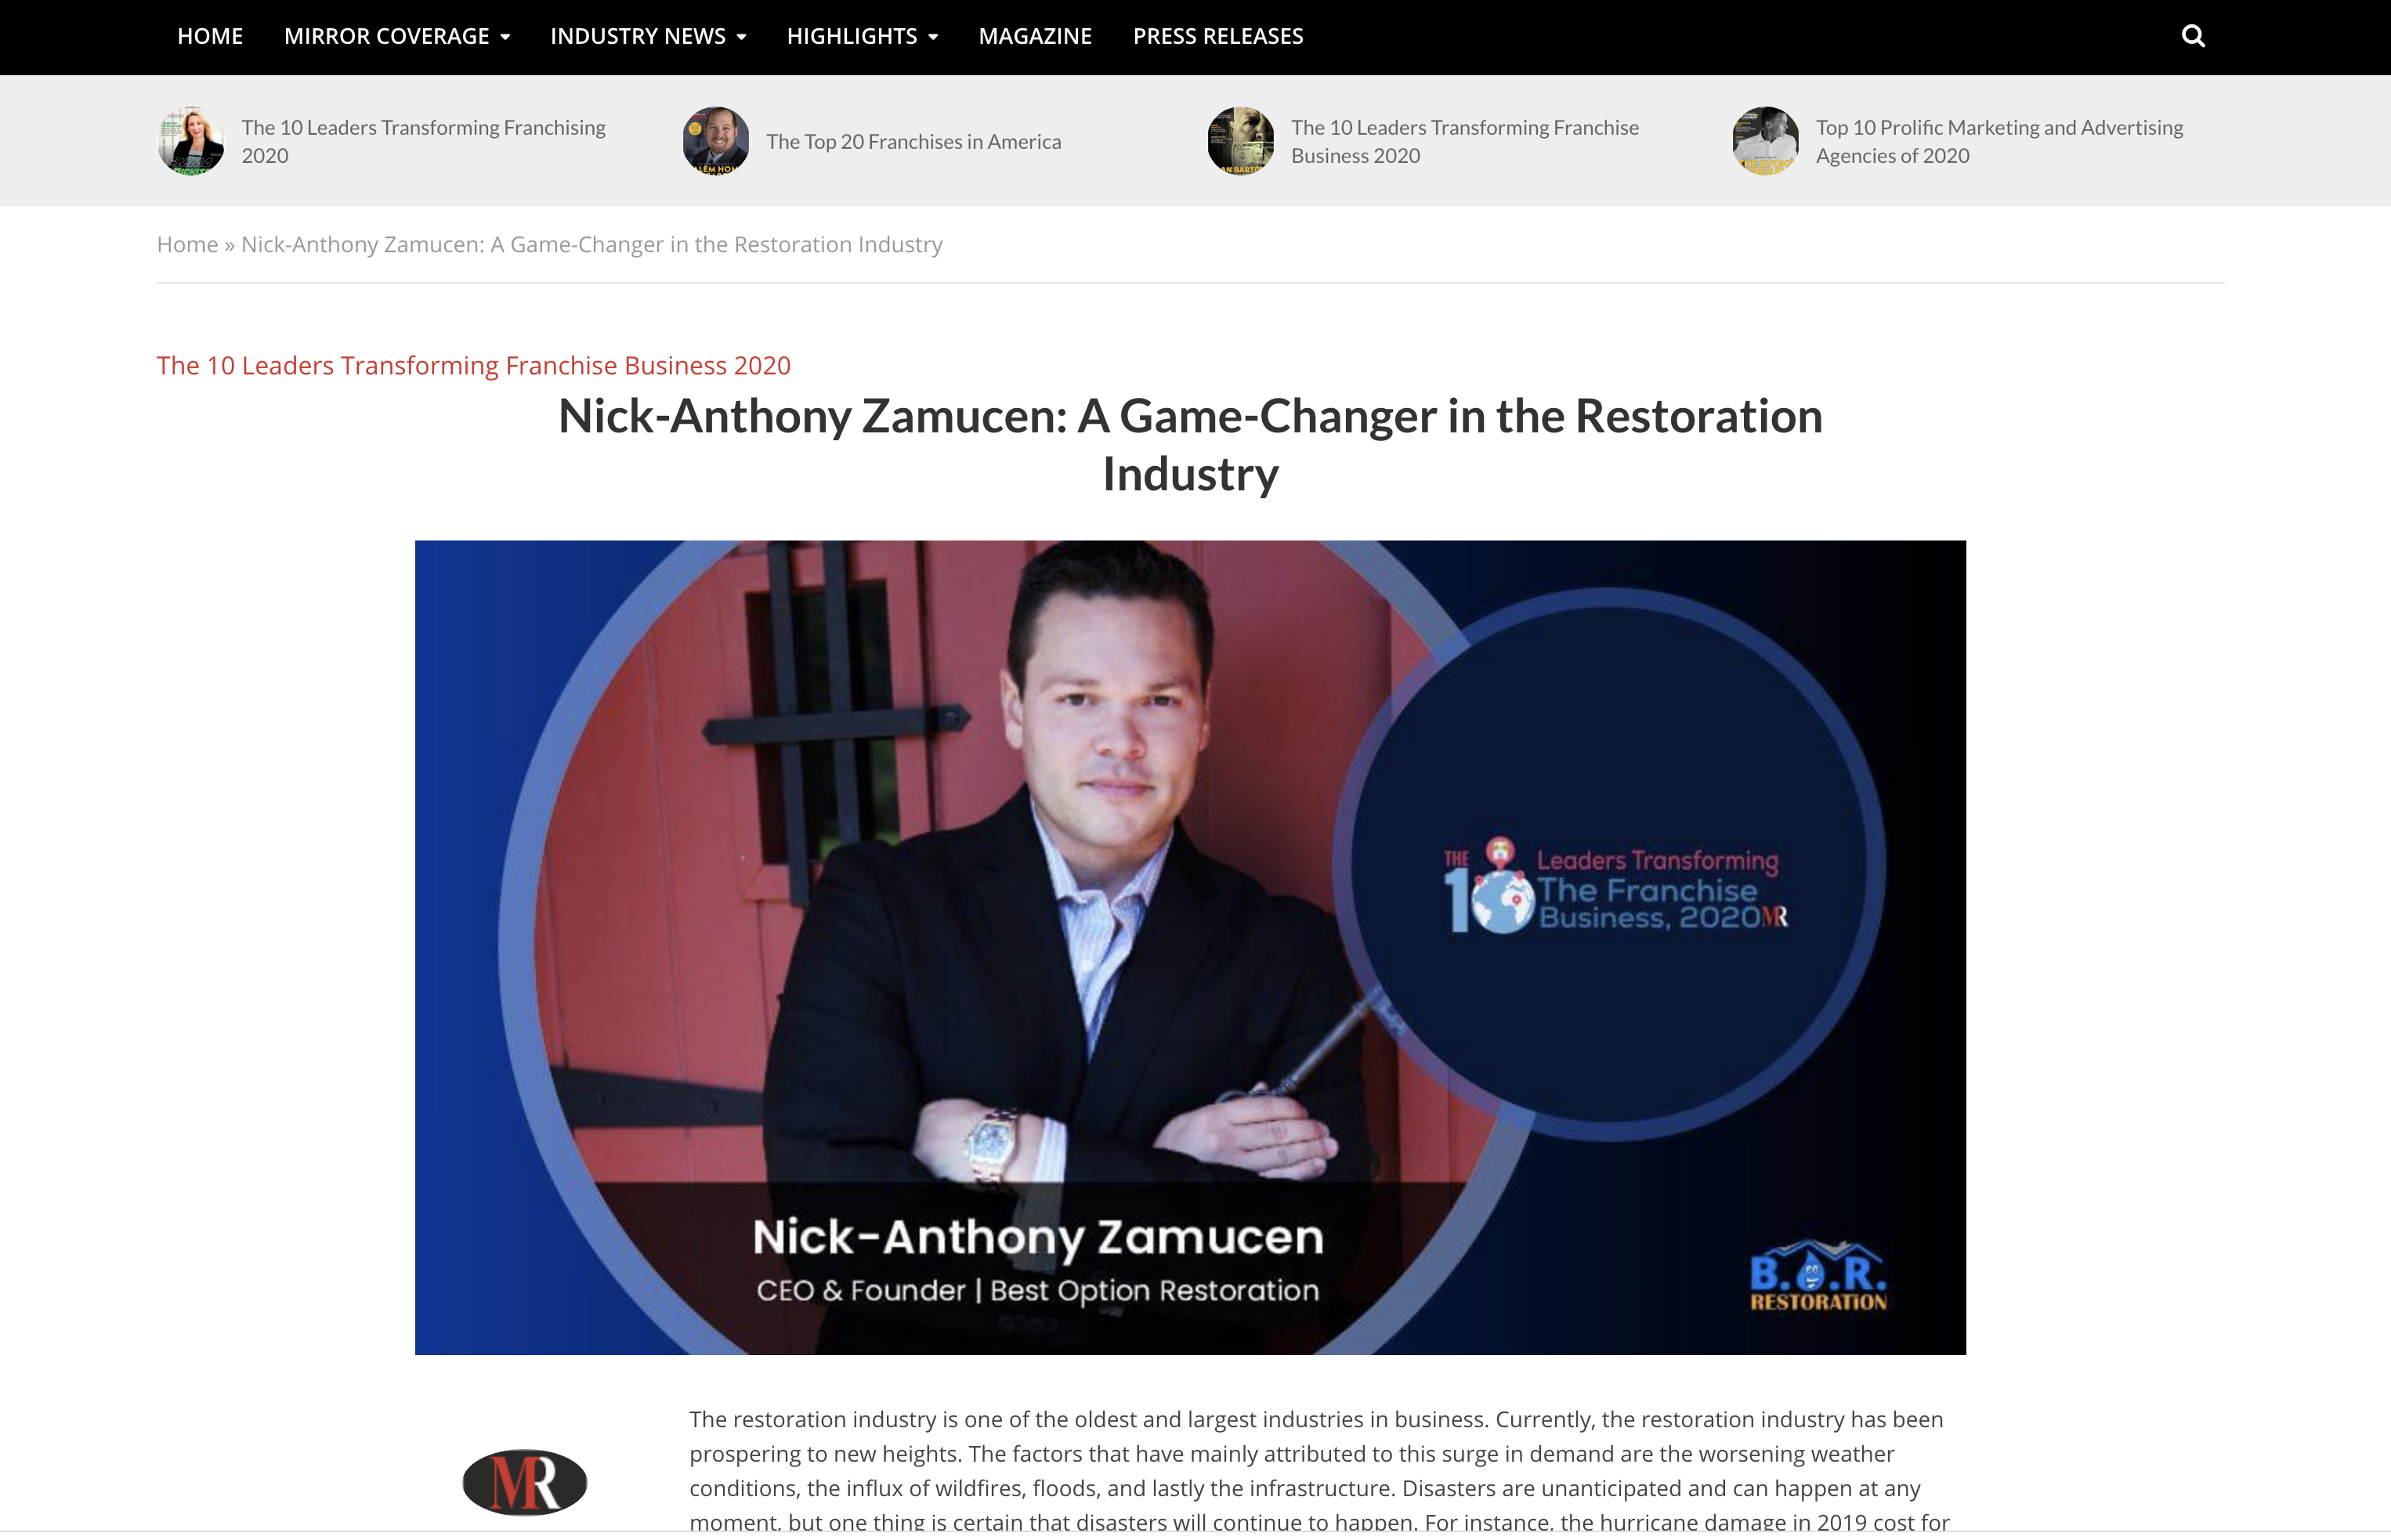 Interview in Mirror Review with Nick-Anthony Zamucen